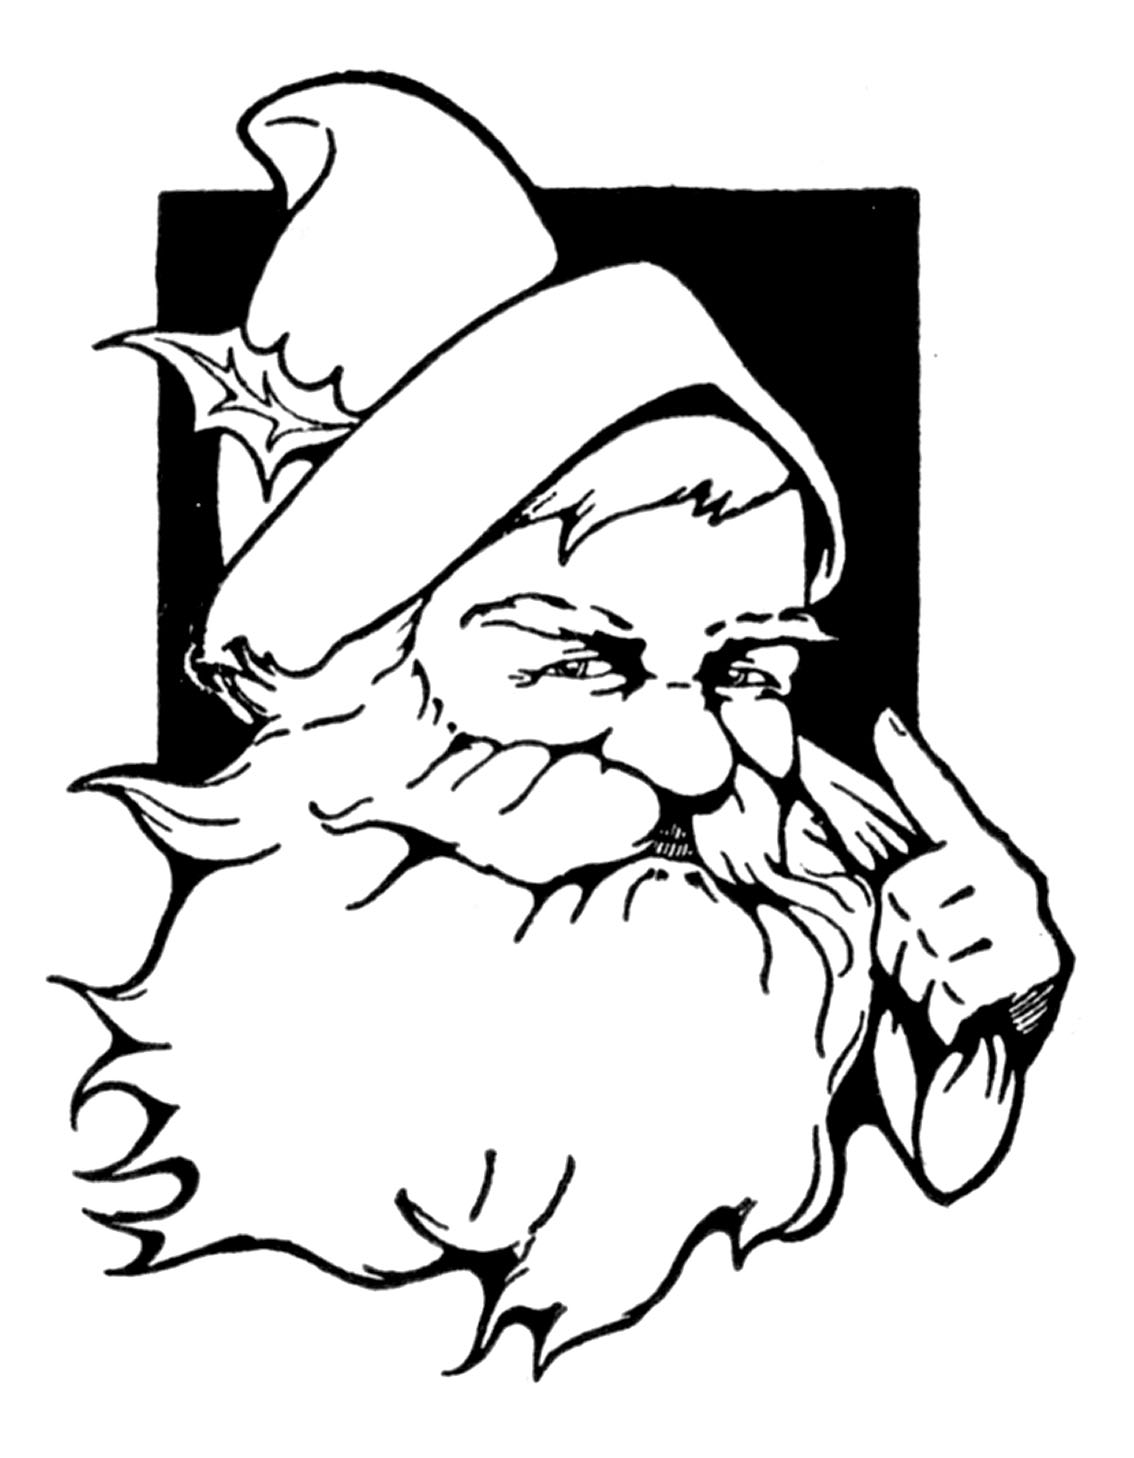 Vintage Christmas Clip Art - Cute Santa - The Graphics Fairy